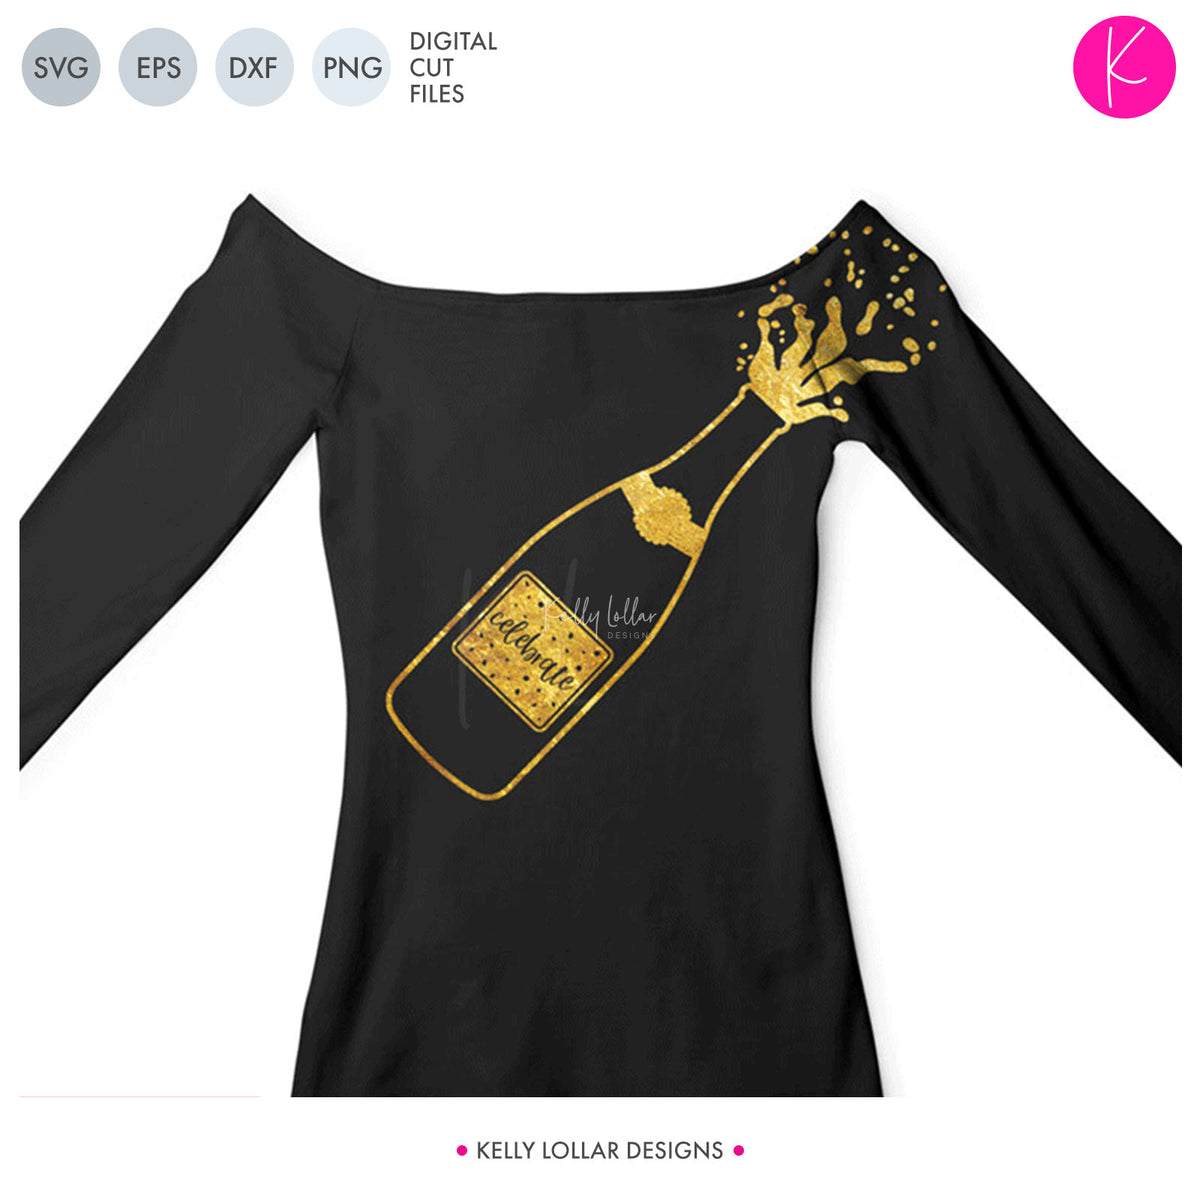 Champagne Bottle | SVG DXF EPS PNG Cut Files